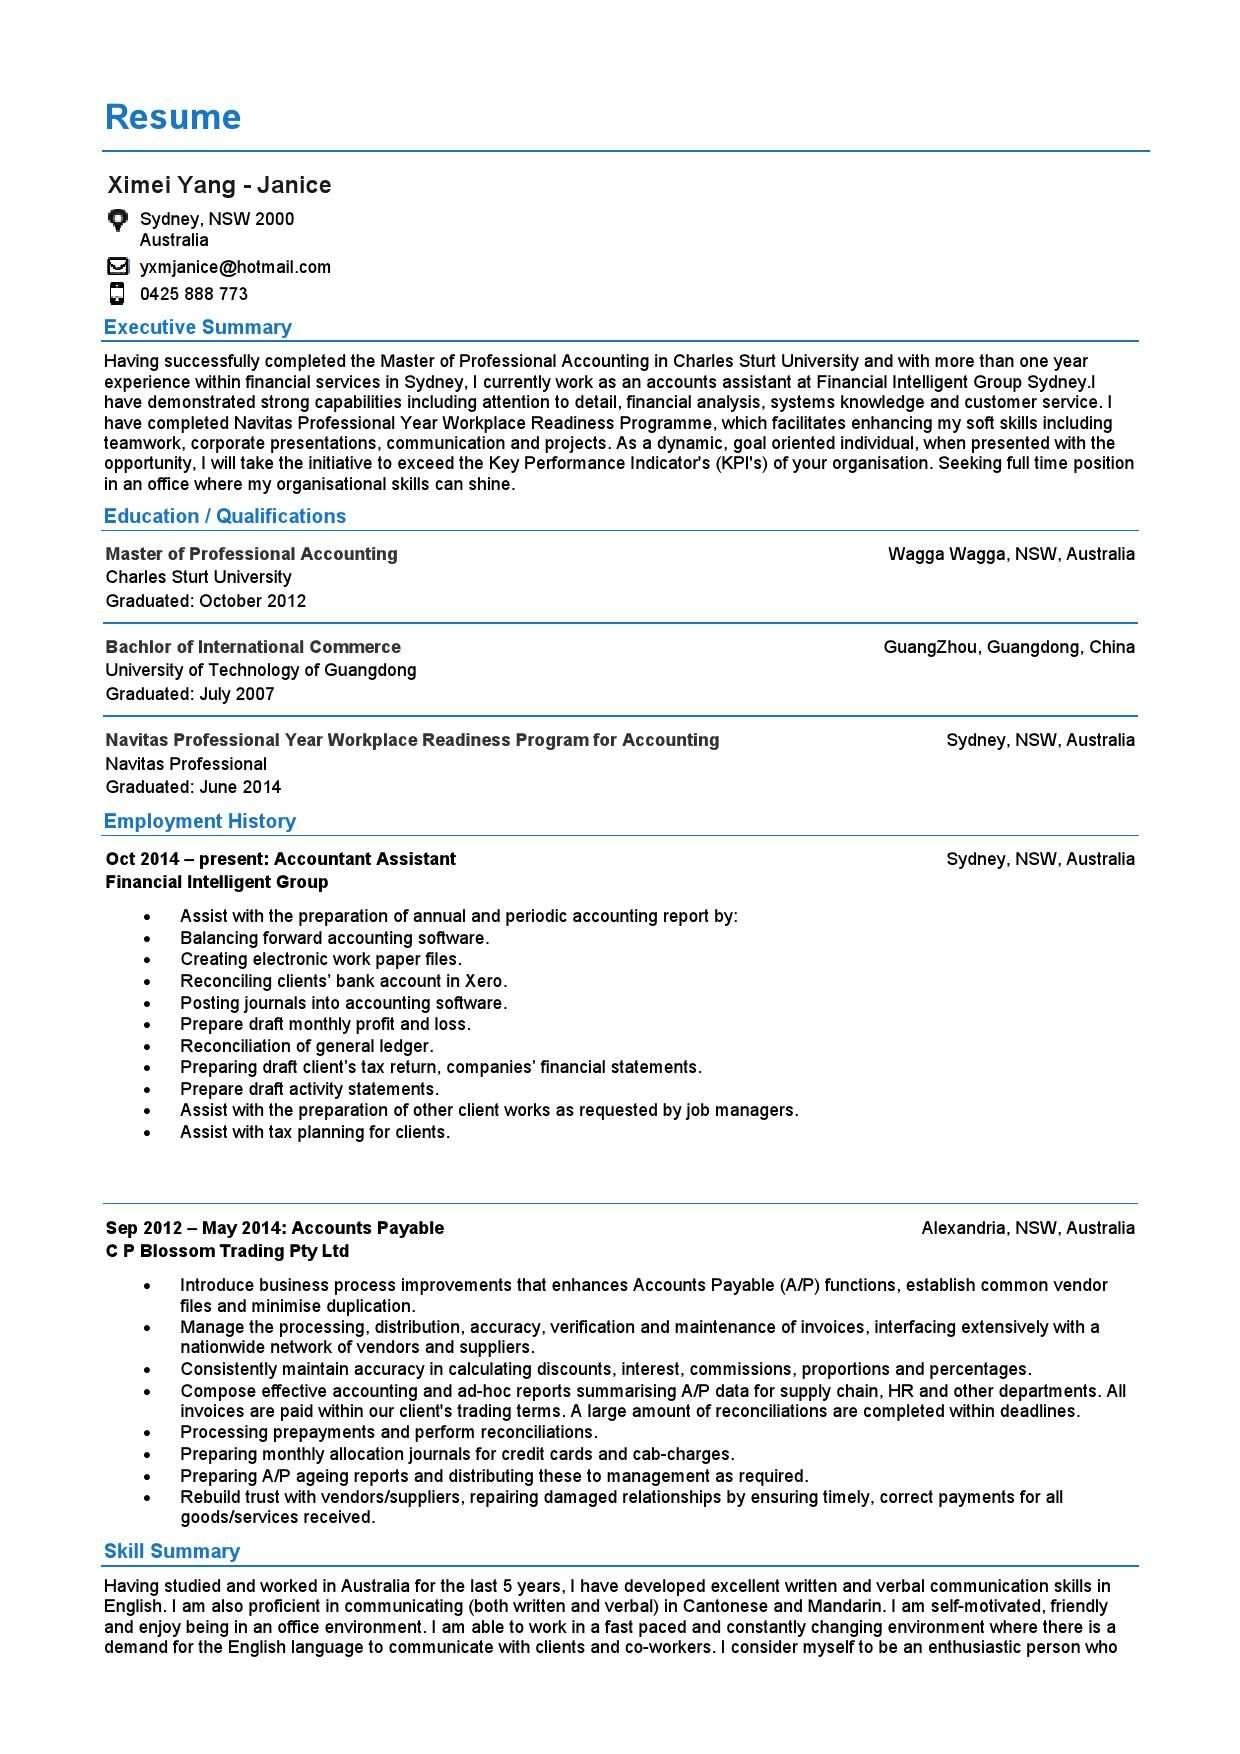 Accounts Payable Resume Sample  HttpExampleresumecvOrgAccounts